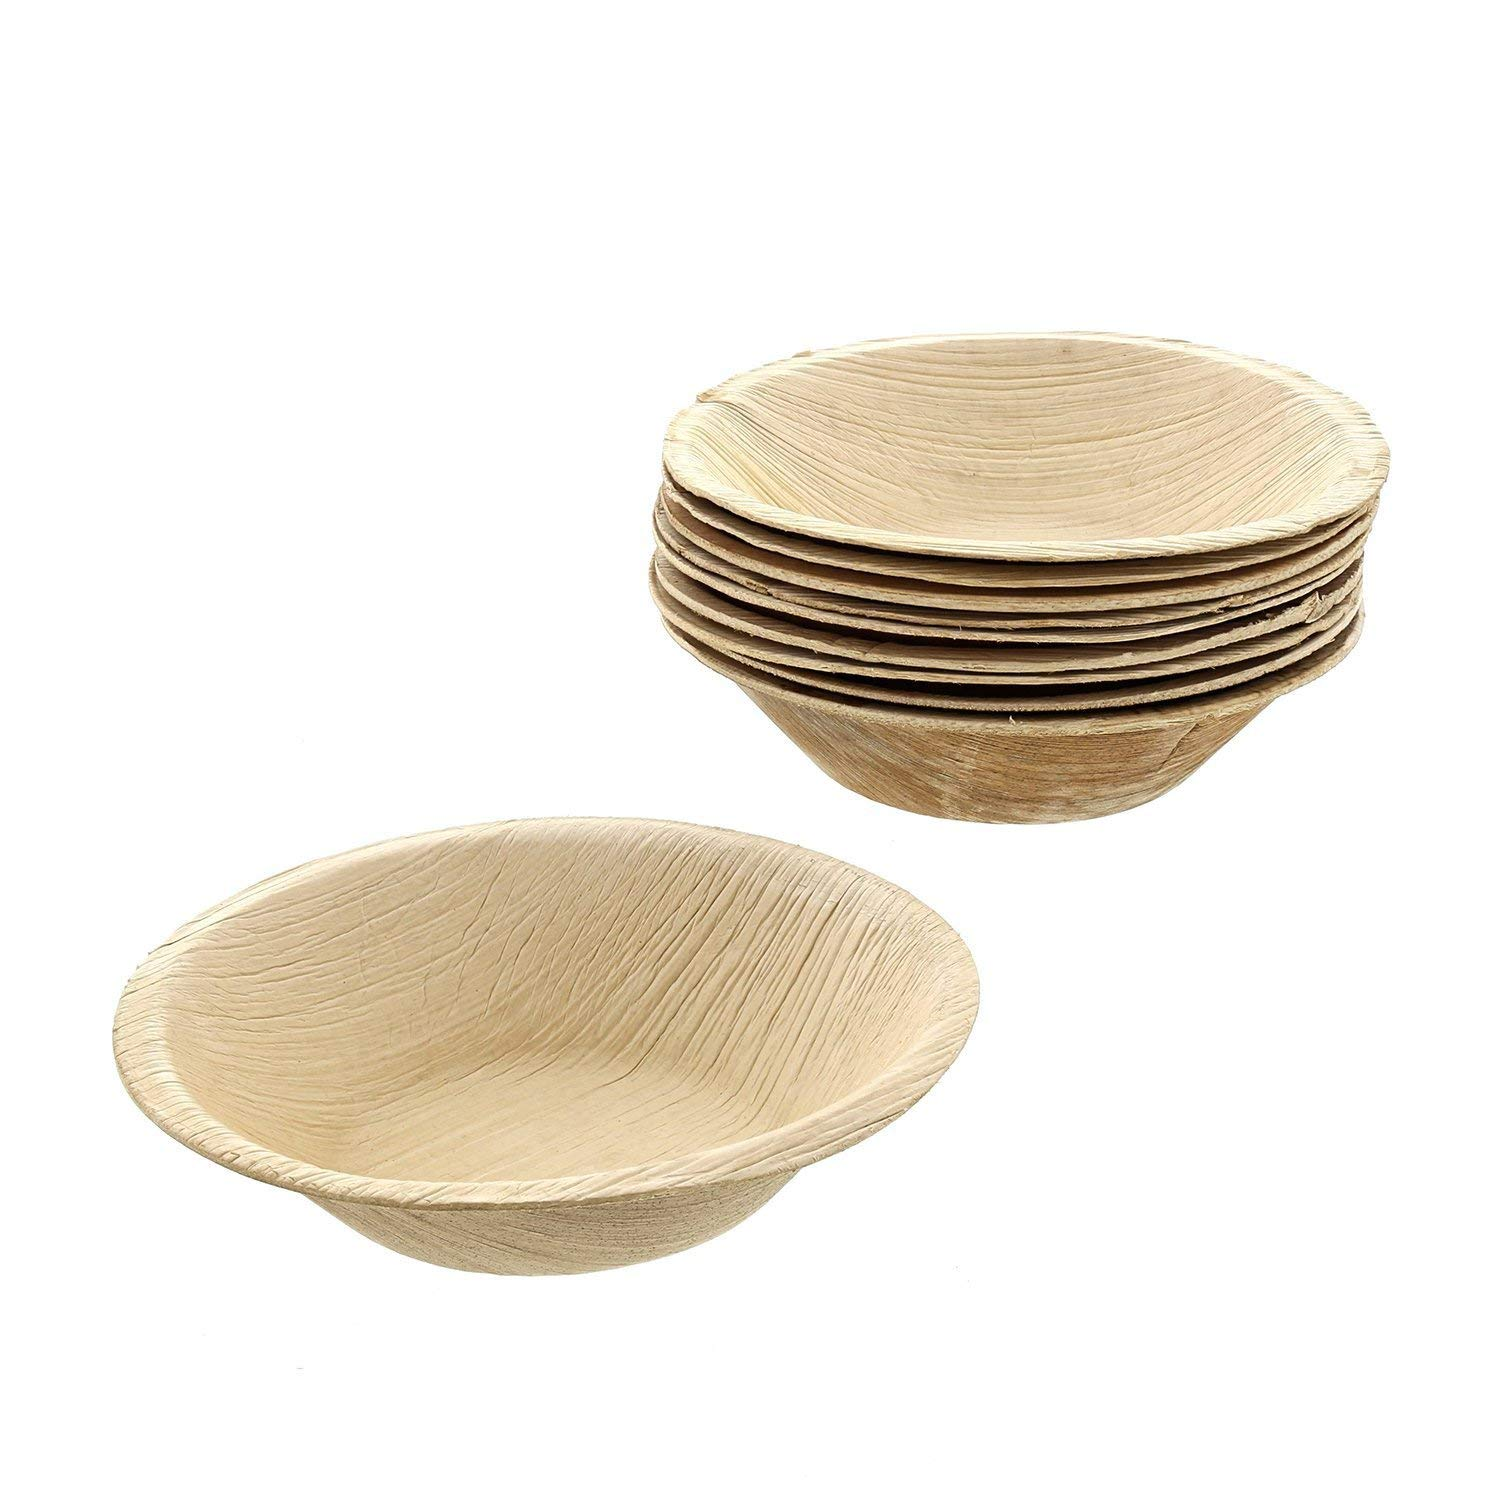 NATURAL ECO-FRIENDLY BIODEGRADABLE PALM PLATE 15cm 6 PACK ROUND WOODEN LEAF